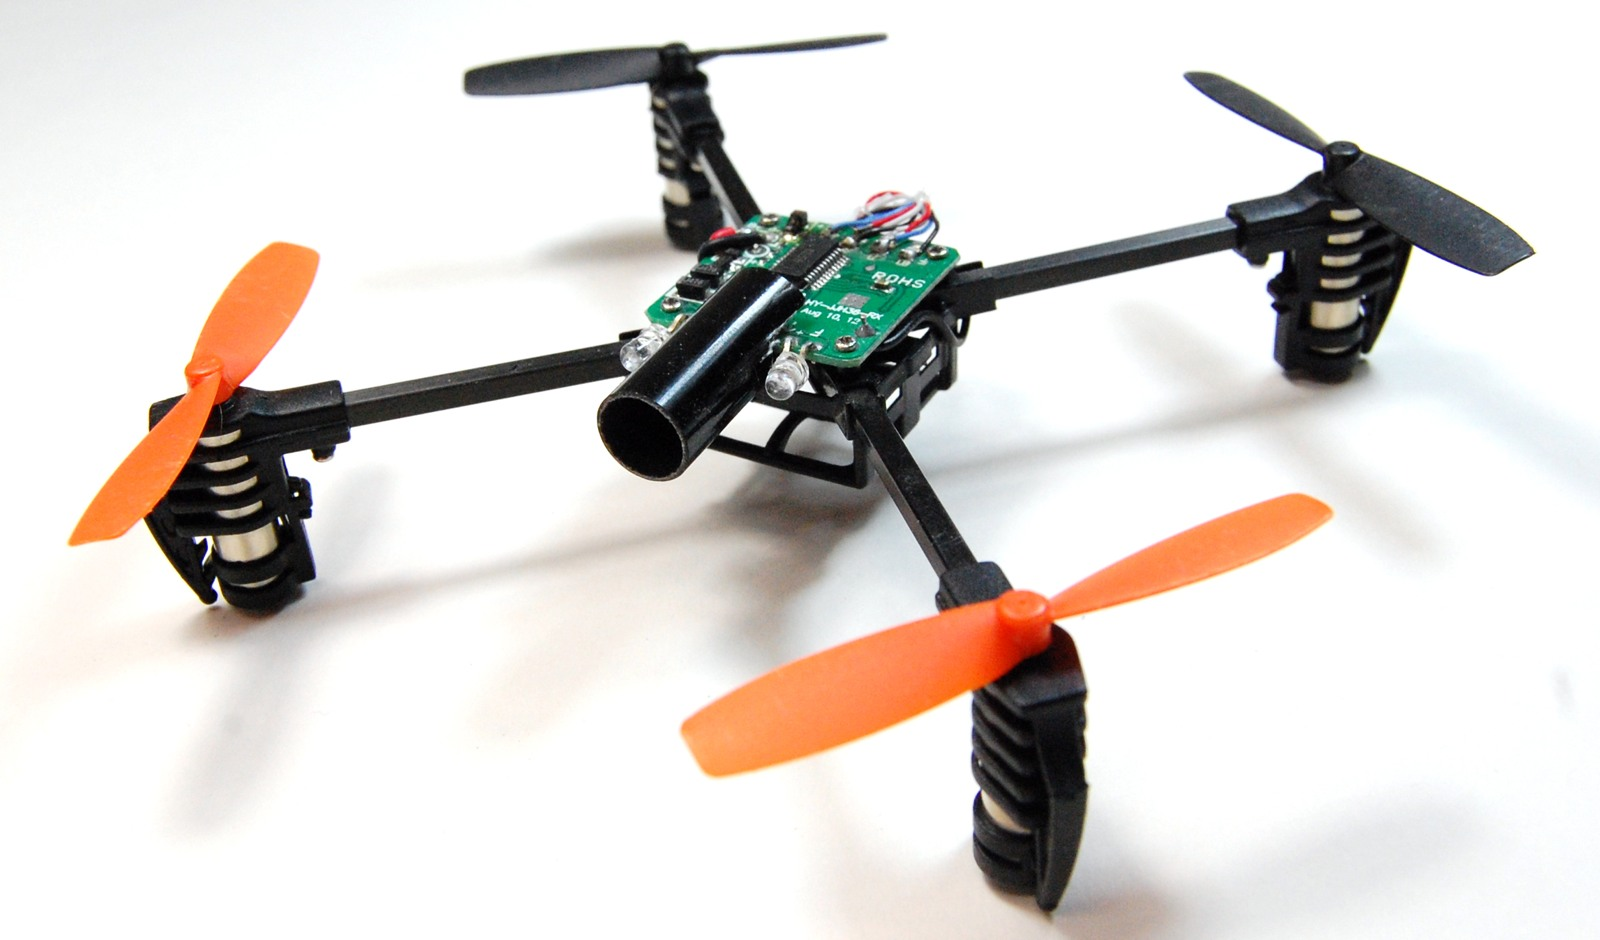 Build A Micro Sized First Person View Quadcopter Boing Transmitter Bug